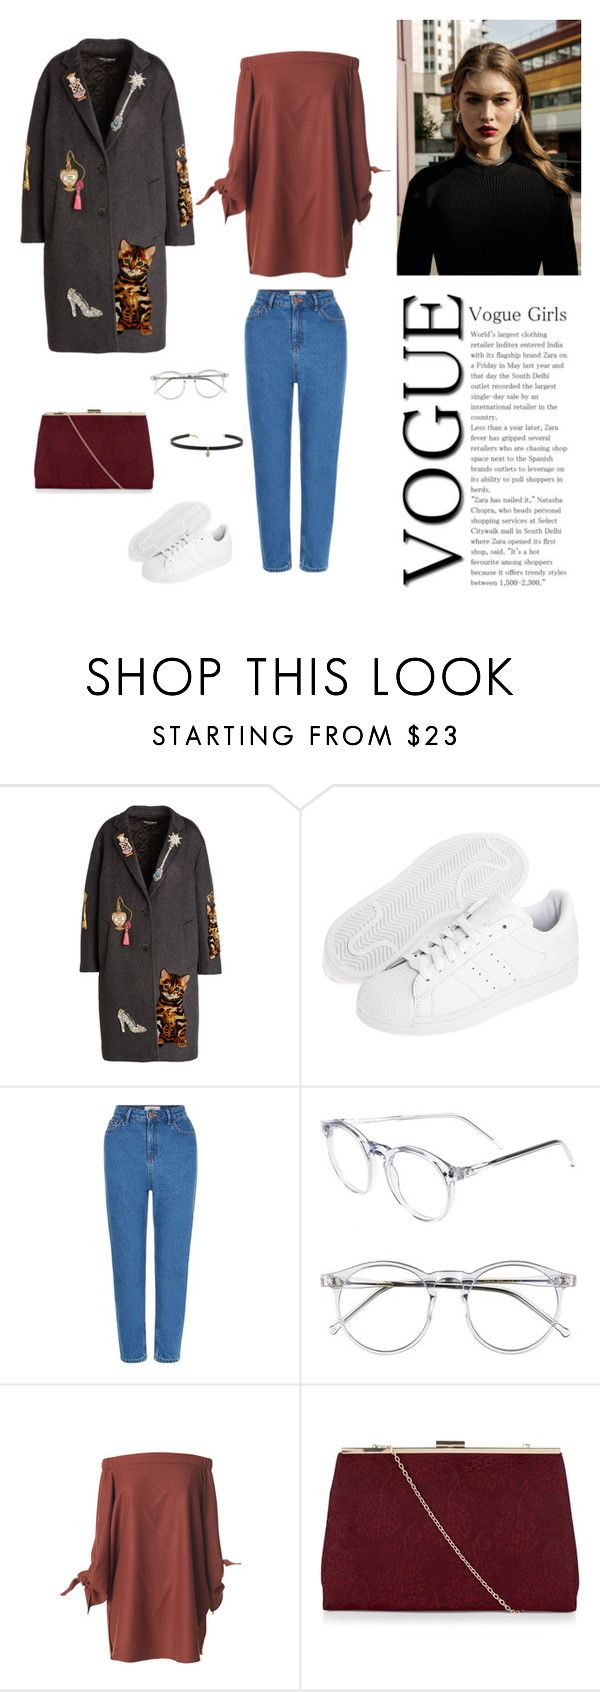 """""""15/10"""" by dorey on Polyvore featuring Dolce&Gabbana, adidas Originals, New Look, Wildfox, TIBI and Carbon & Hyde"""